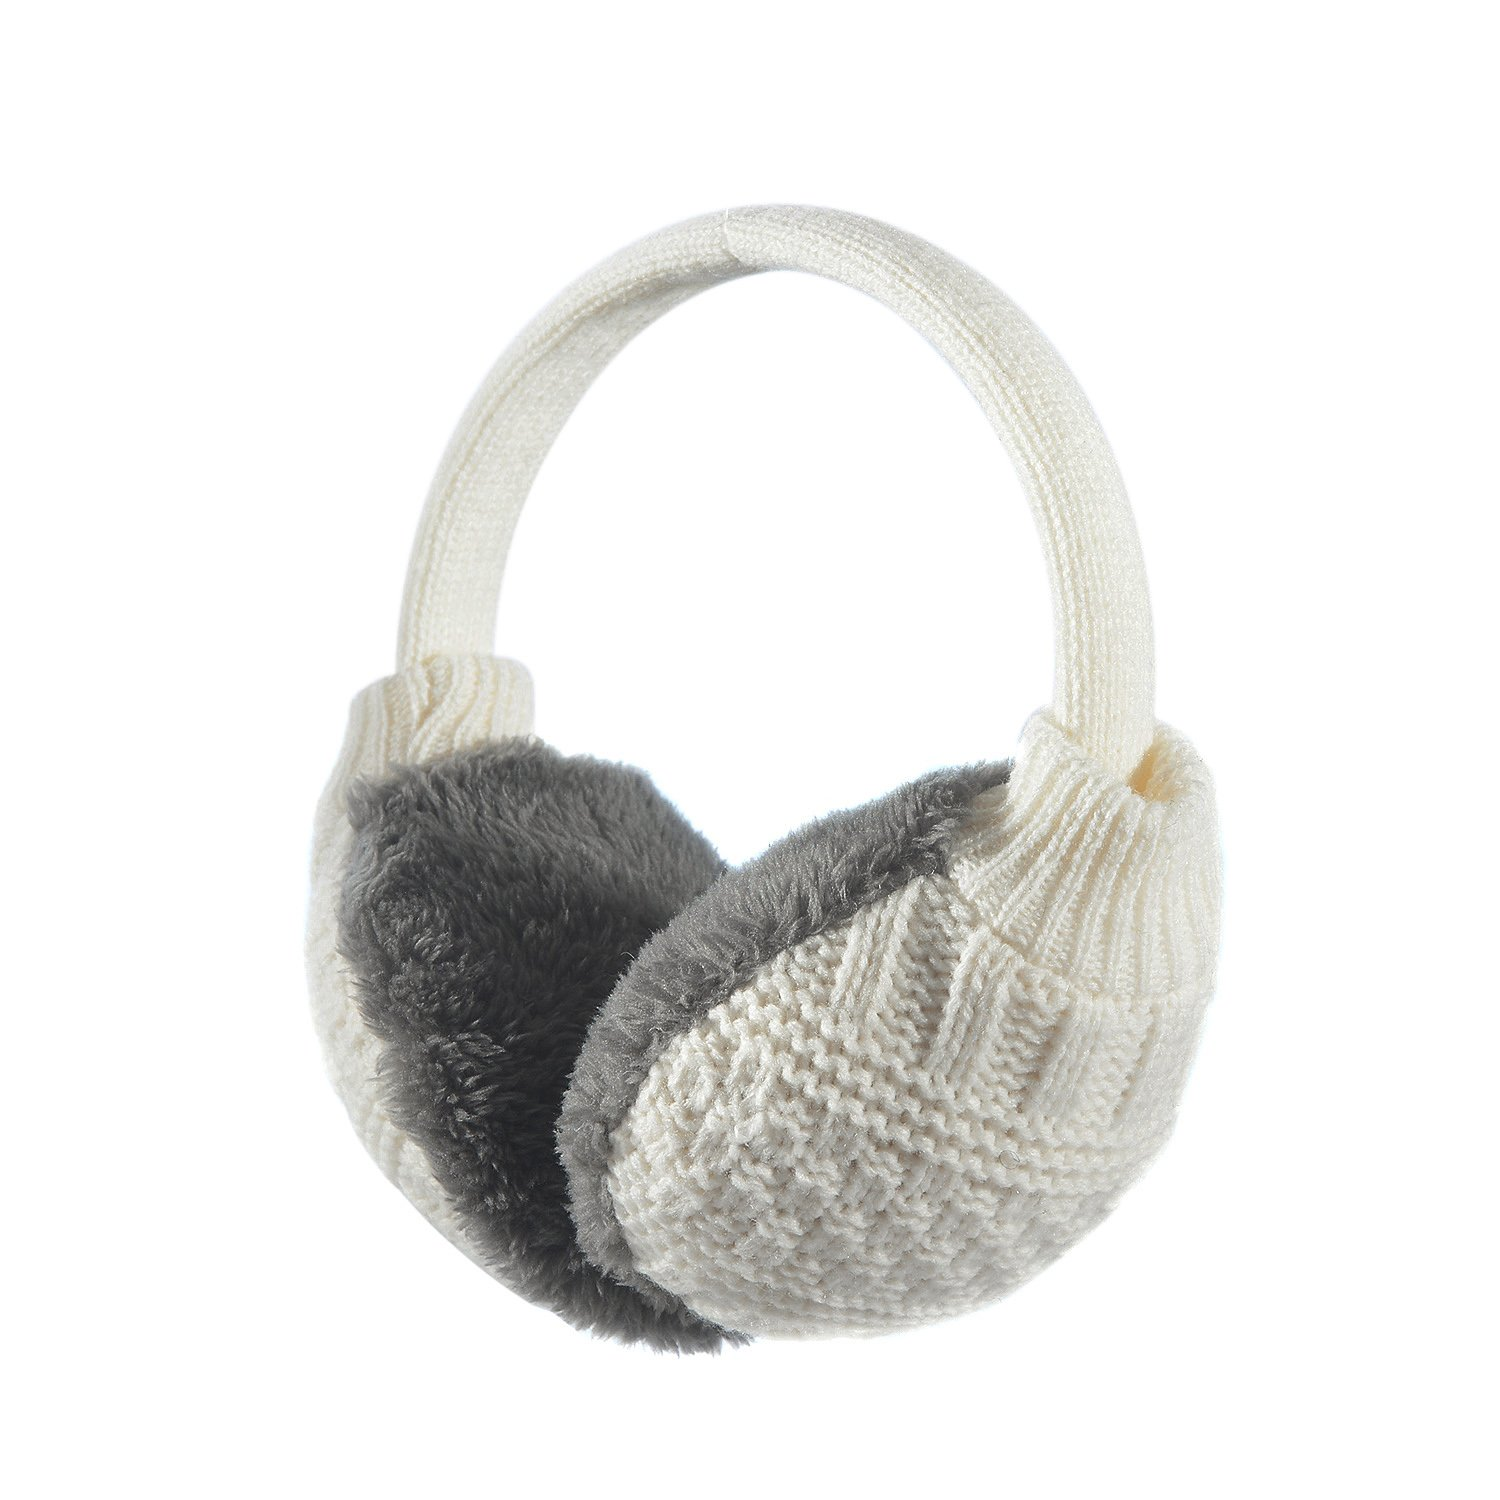 Sudawave Women's Winter Adjustable Knitted Ear Muffs With Faux Furry Outdoor Ear warmers (Cream White)